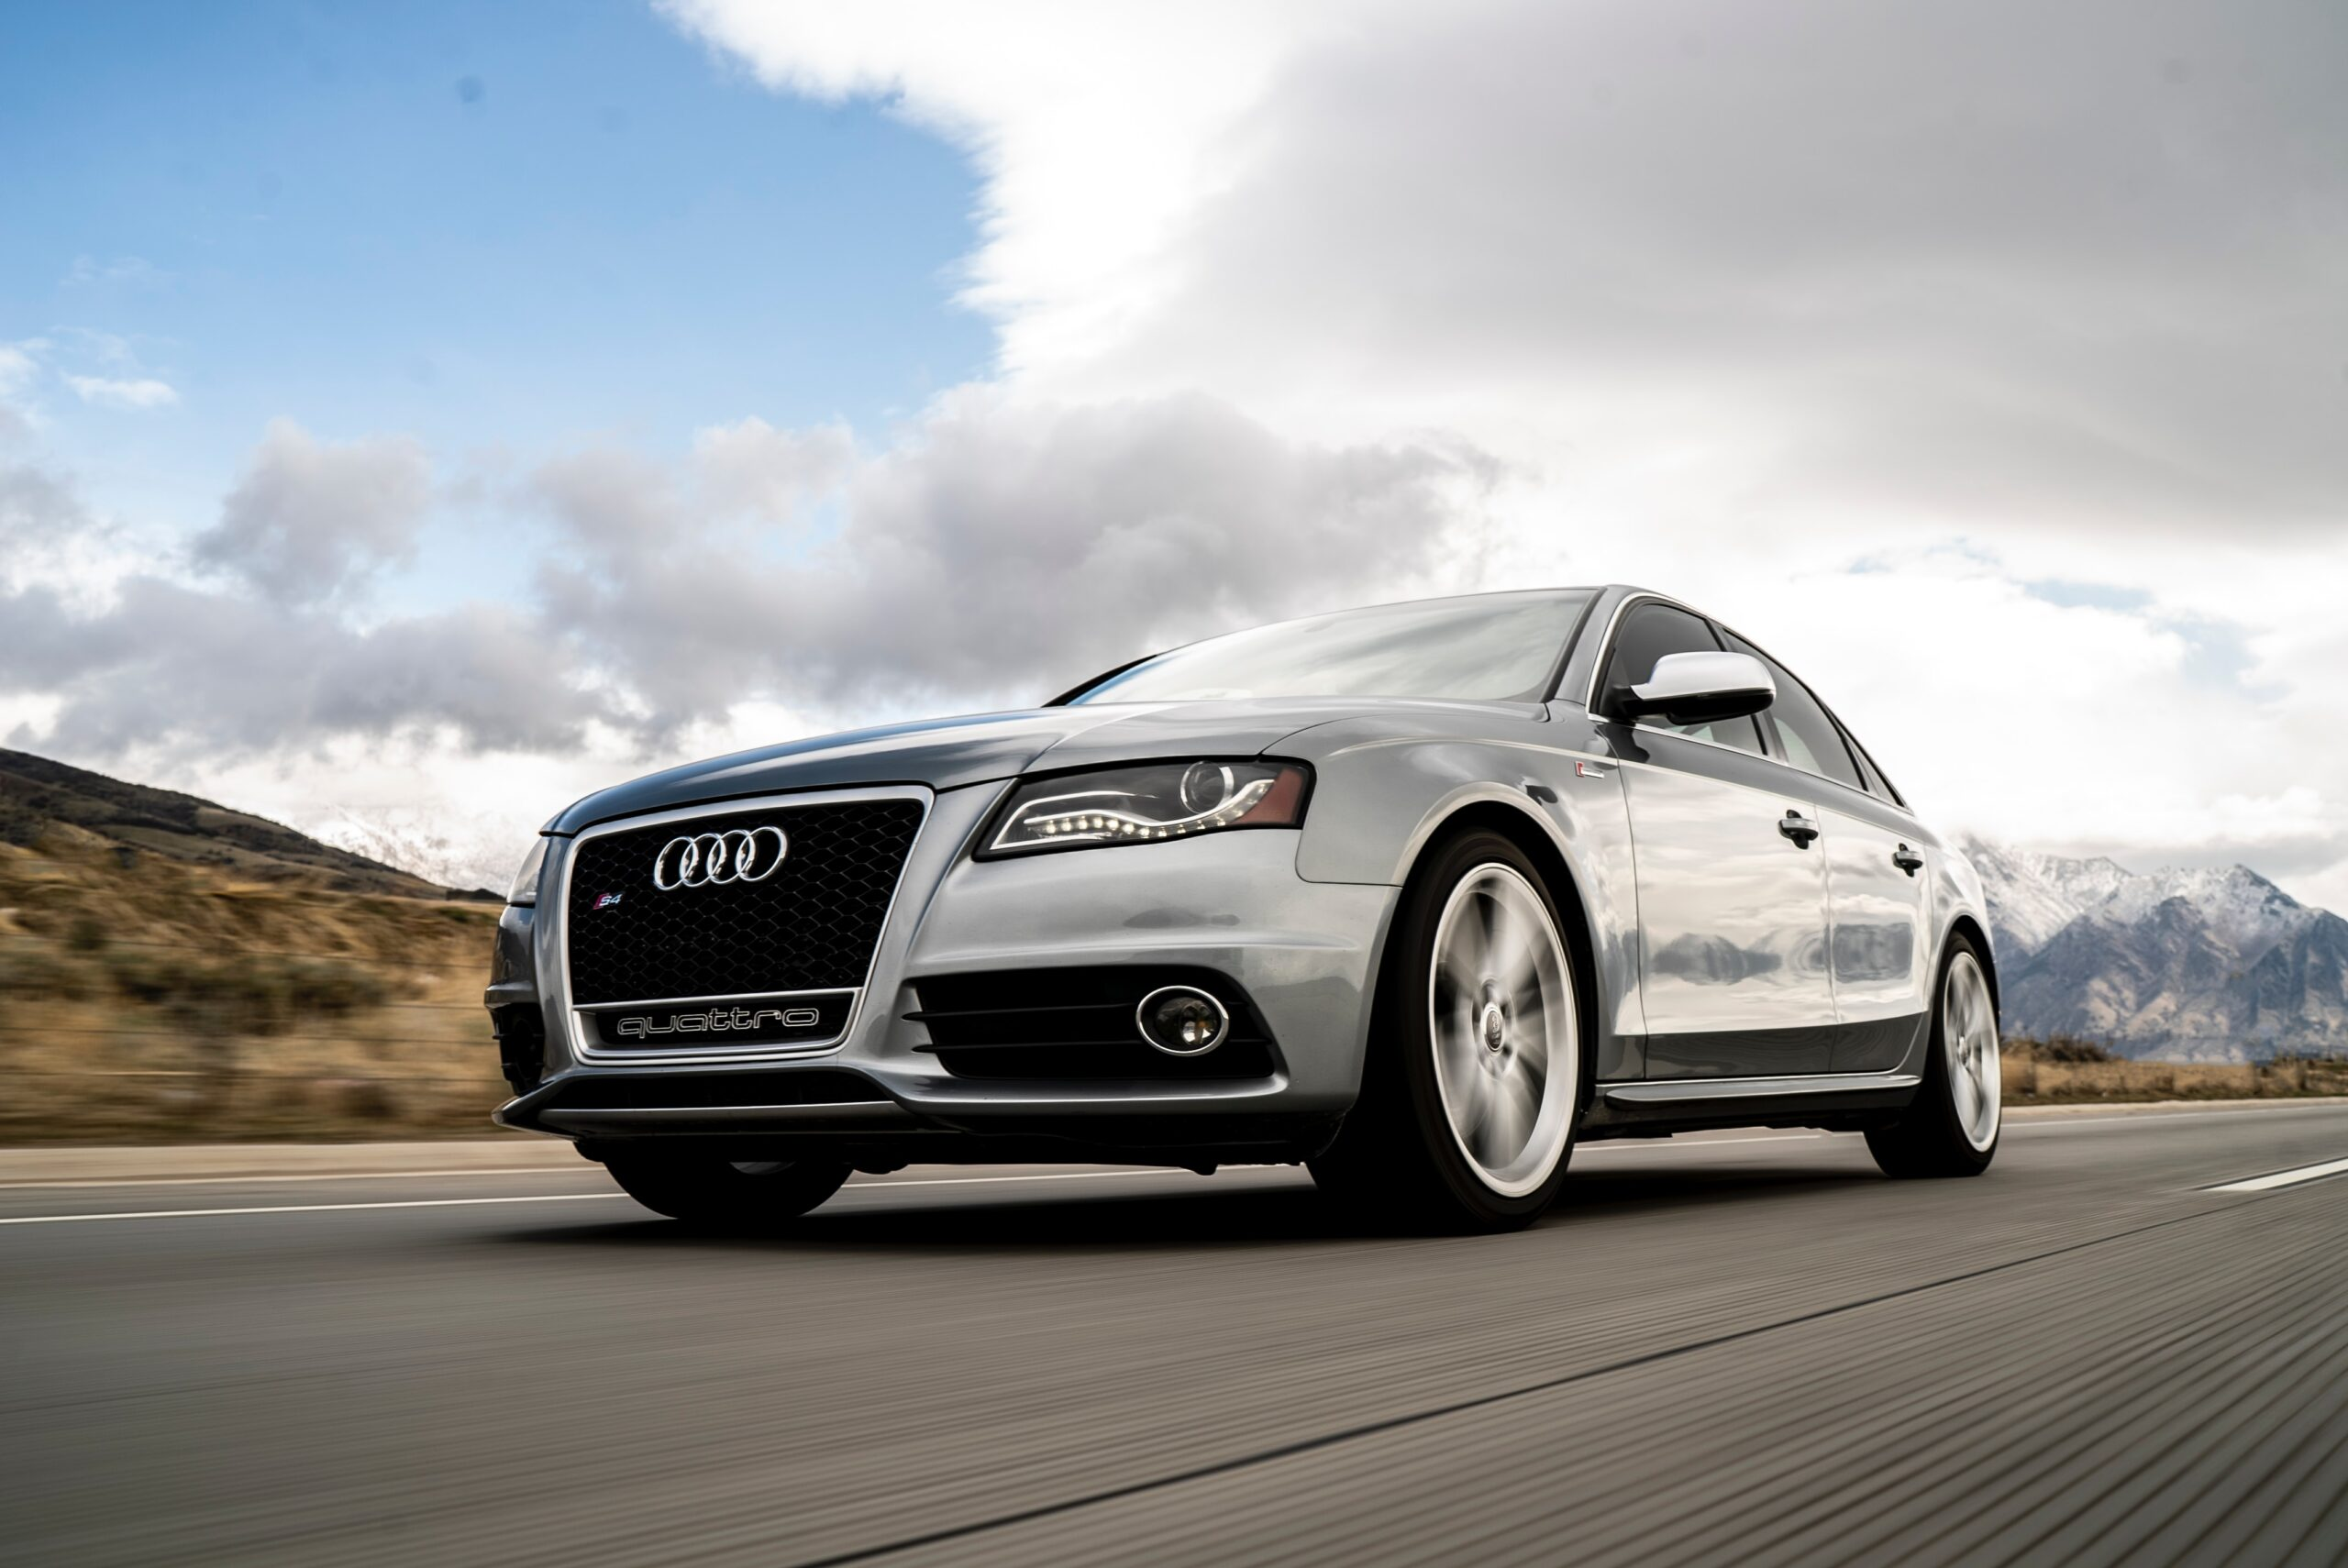 Used Audi Car in New Zealand